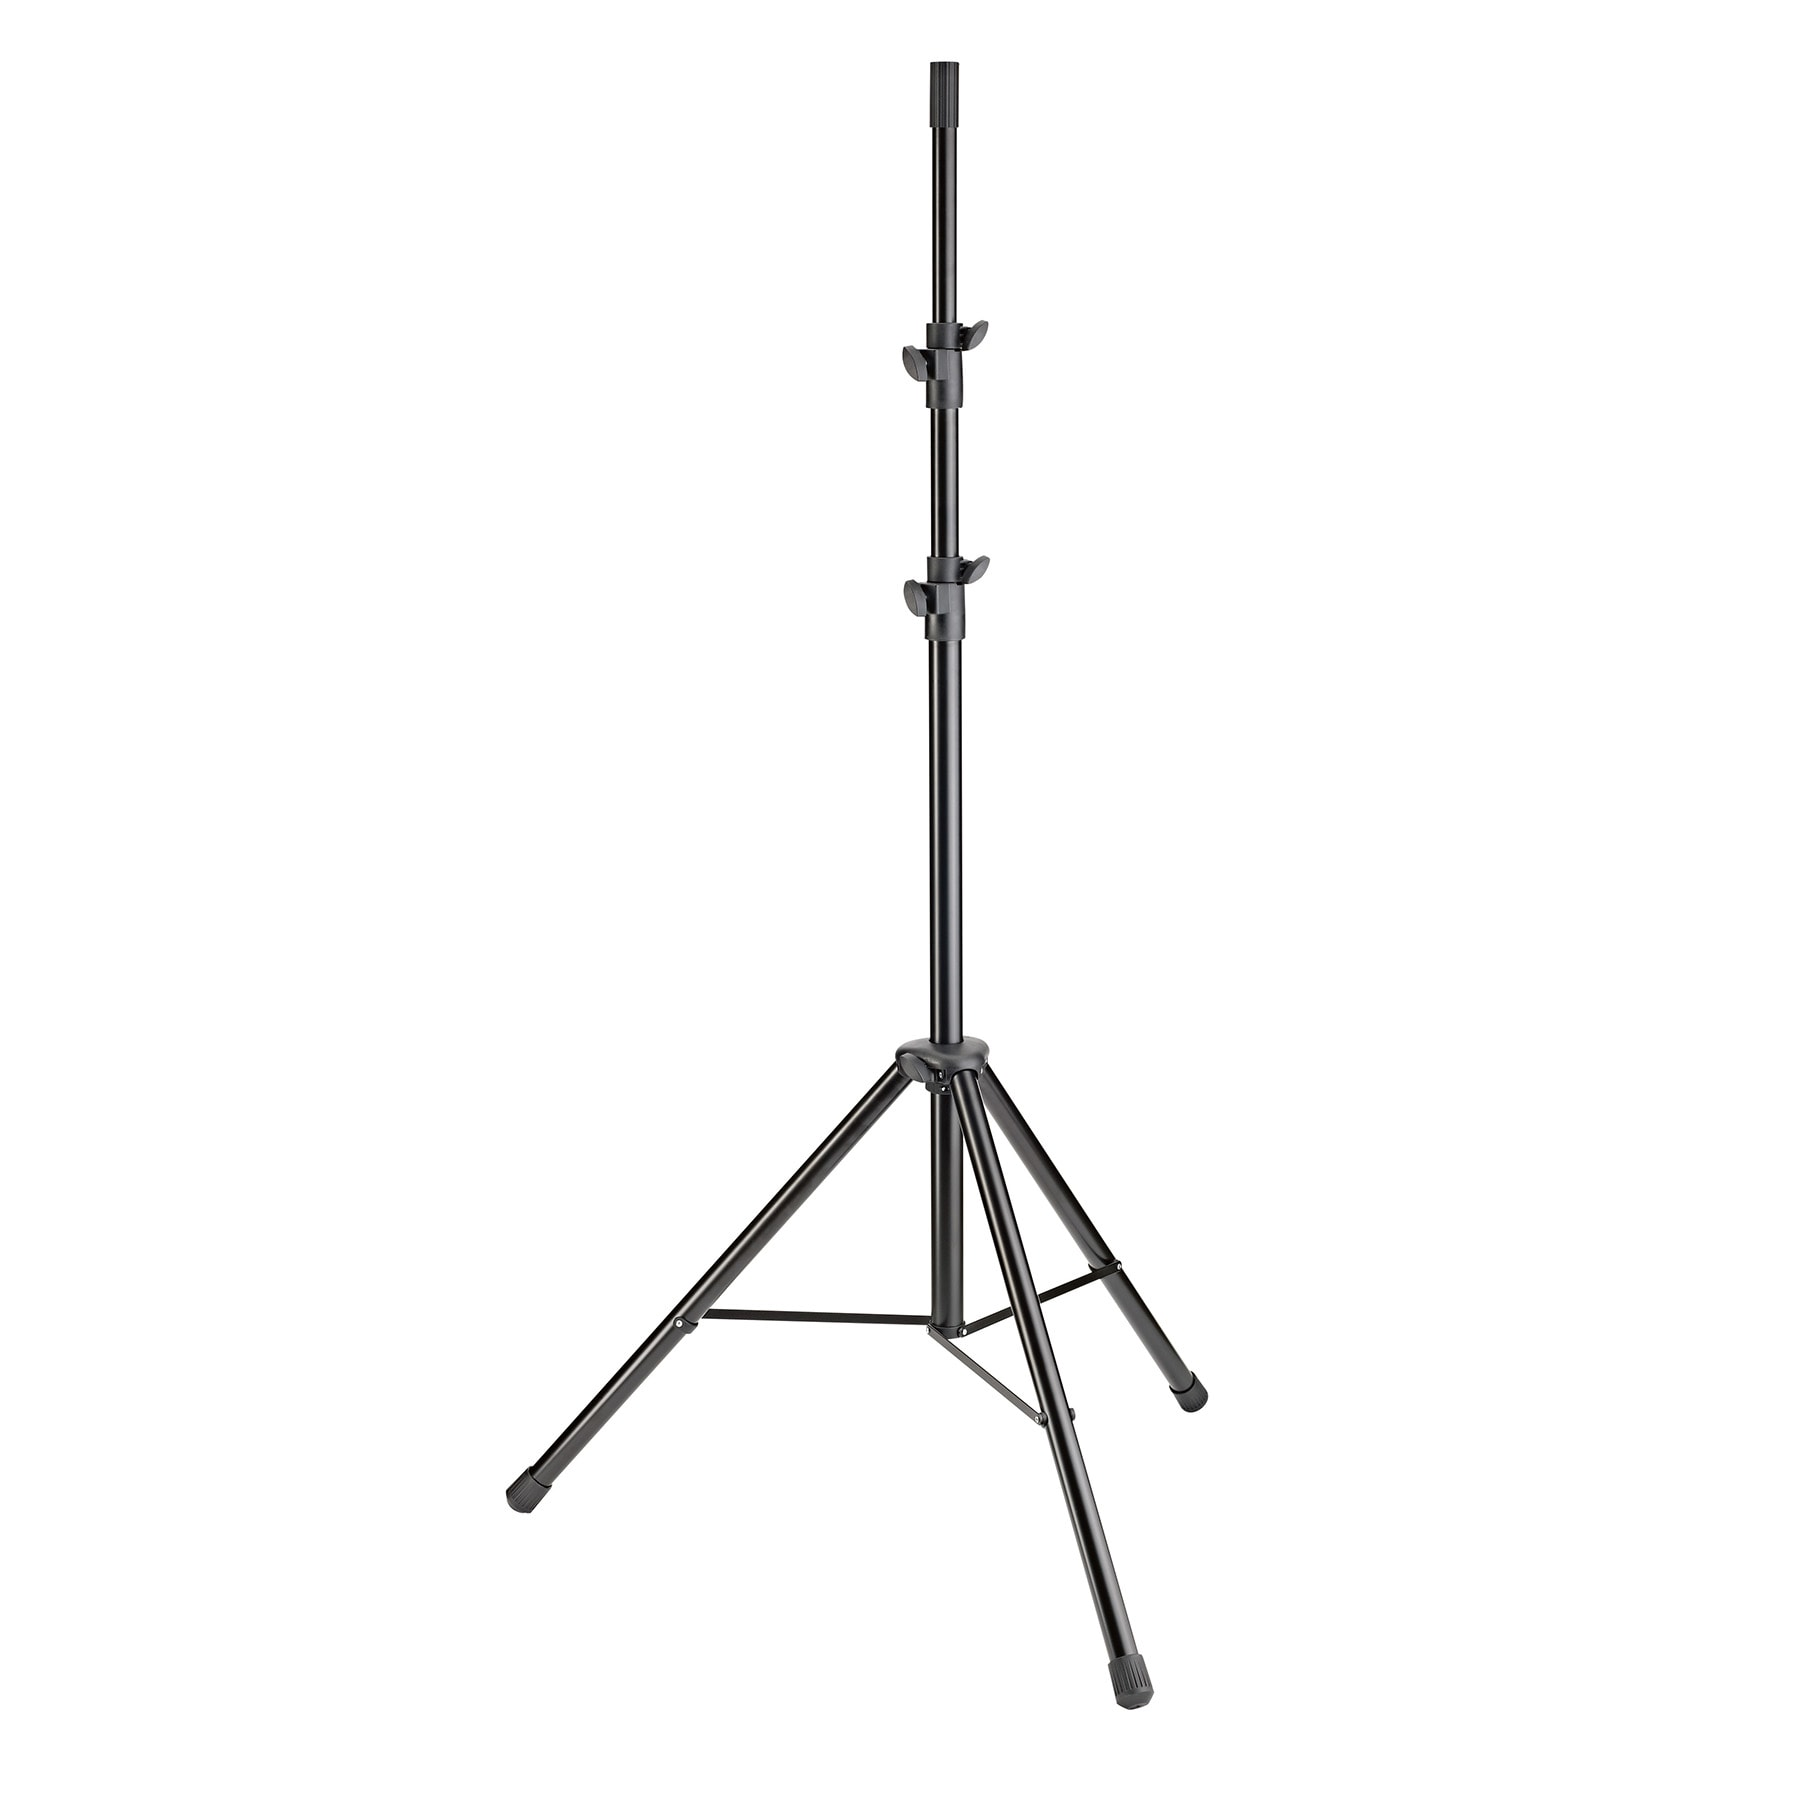 KM24645 - Lighting stand